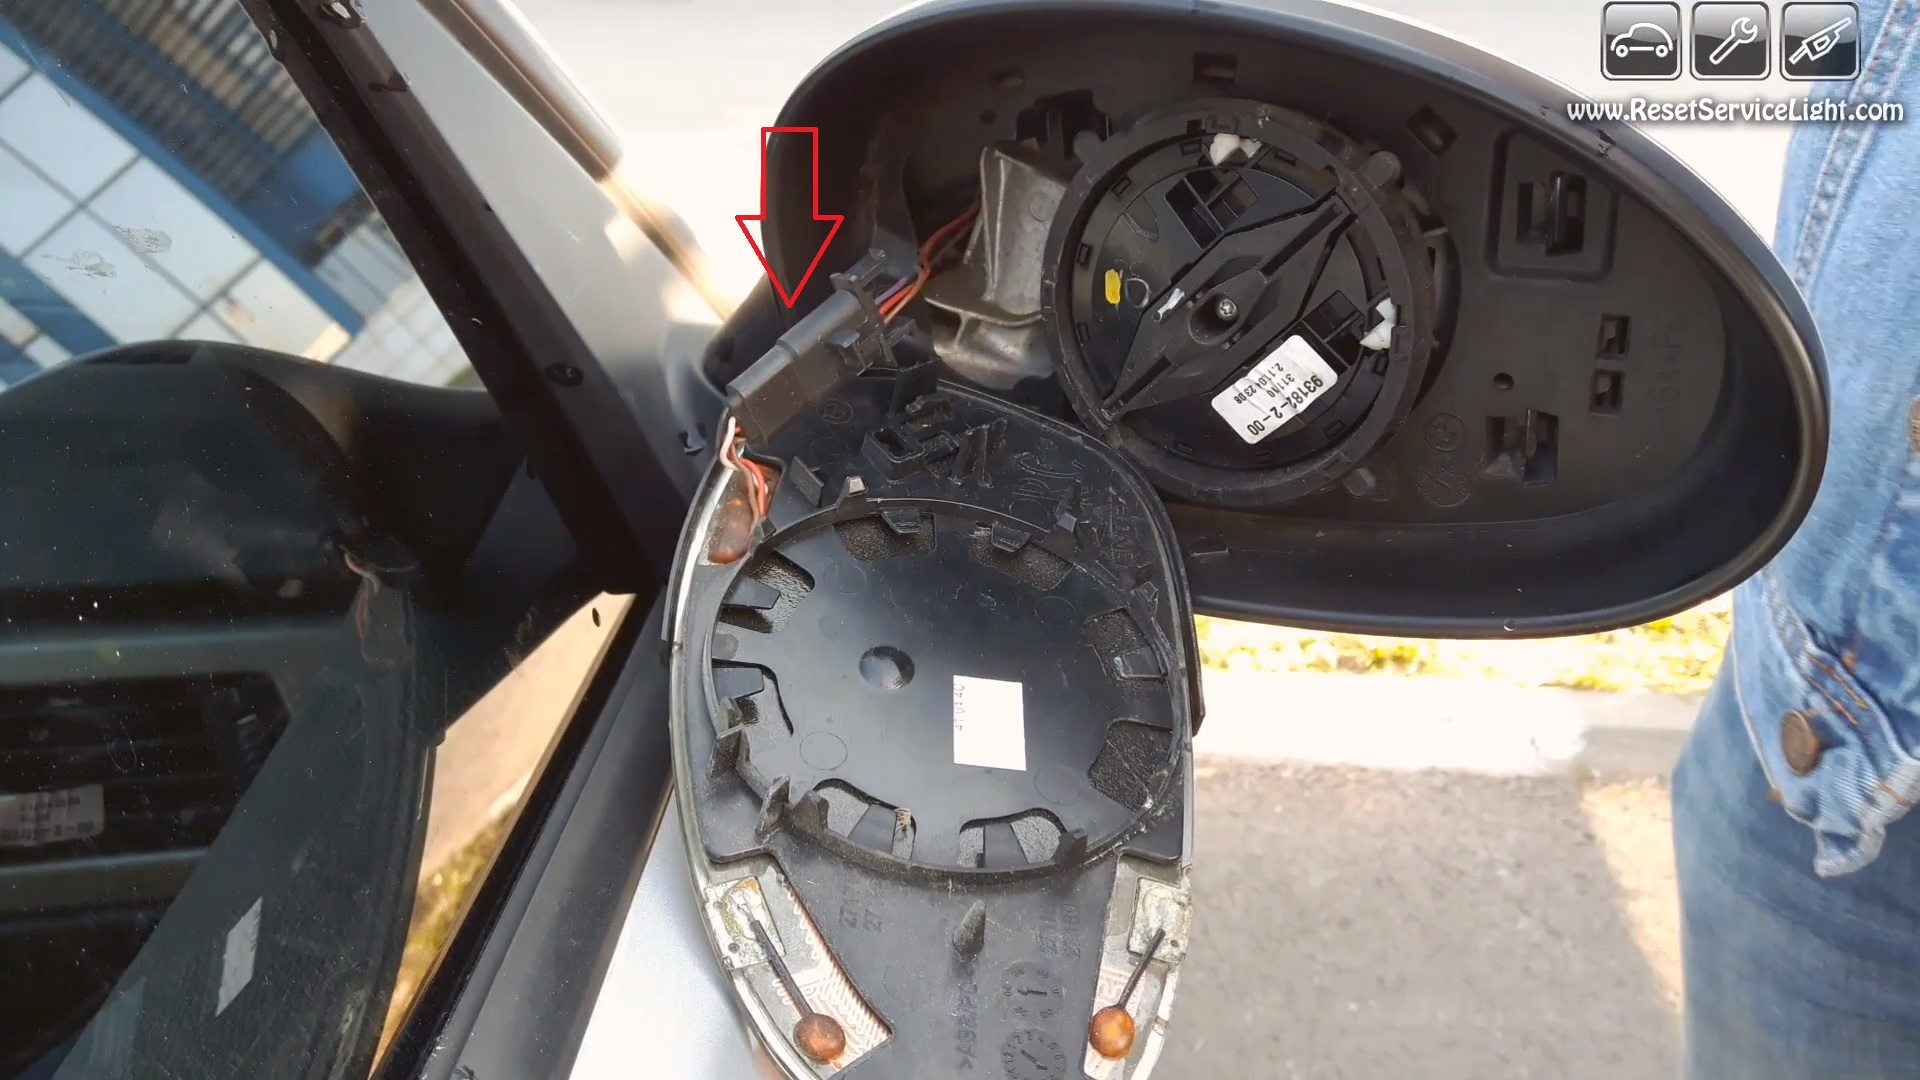 plug-wires-behind-the-gl-of-the-mirror-on-BMW-E90 When To Change Plugs And Wires on when to change brakes, when to change belt, when to change head gaskets, when to change coil, when to change shocks, when to change headers, when to change tires,